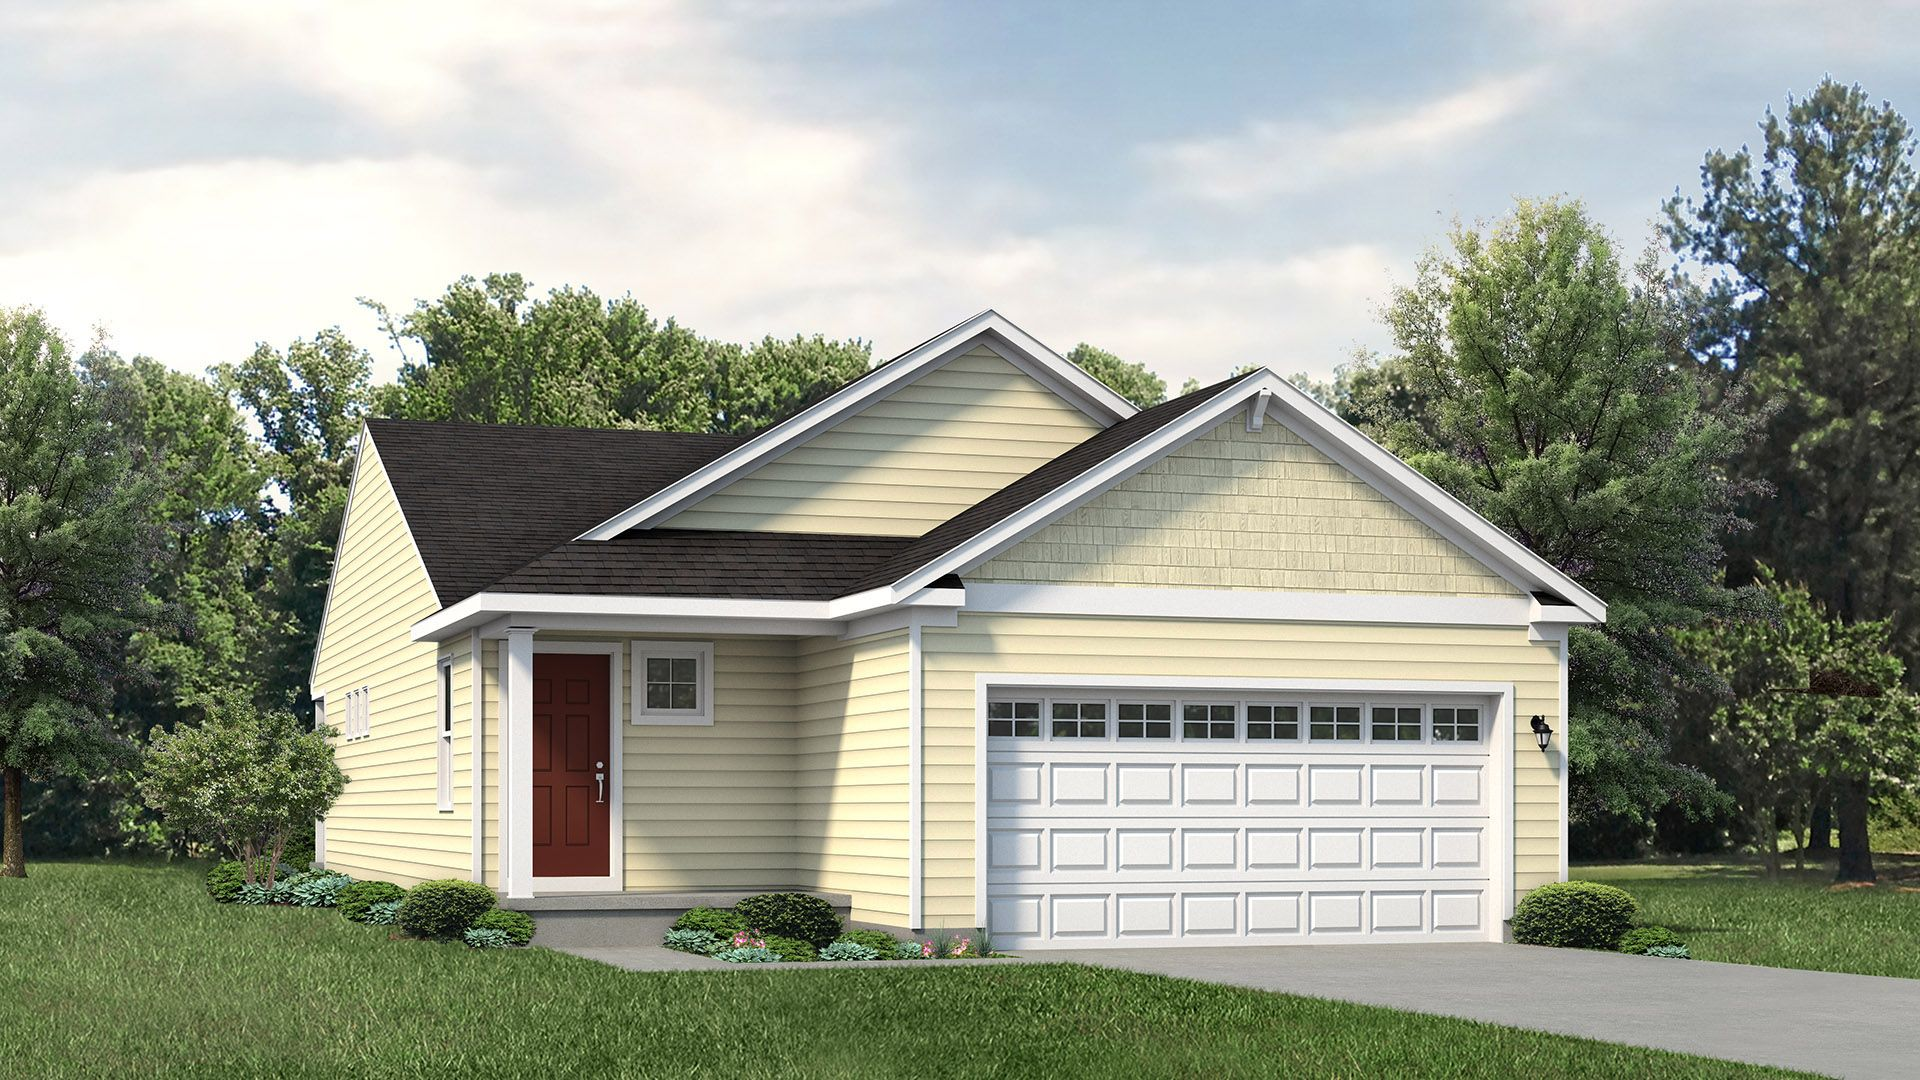 Exterior featured in the Glynwood By S & A Homes in Altoona, PA